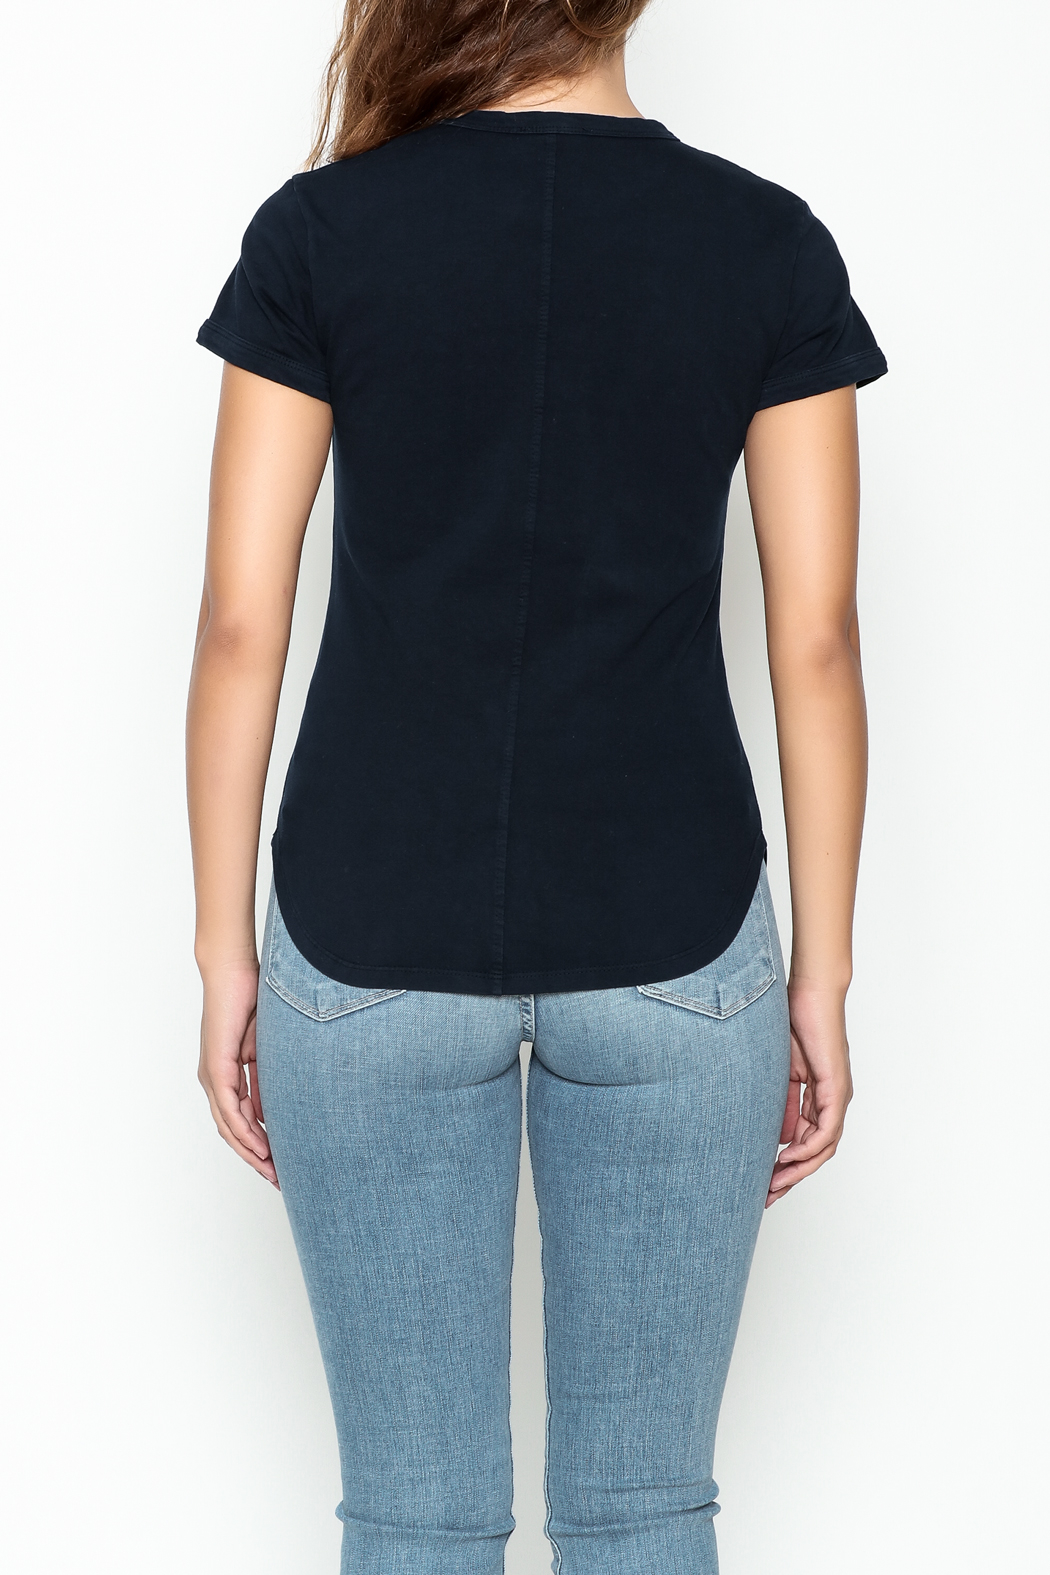 FRAME Denim Navy Ringer Tee - Back Cropped Image